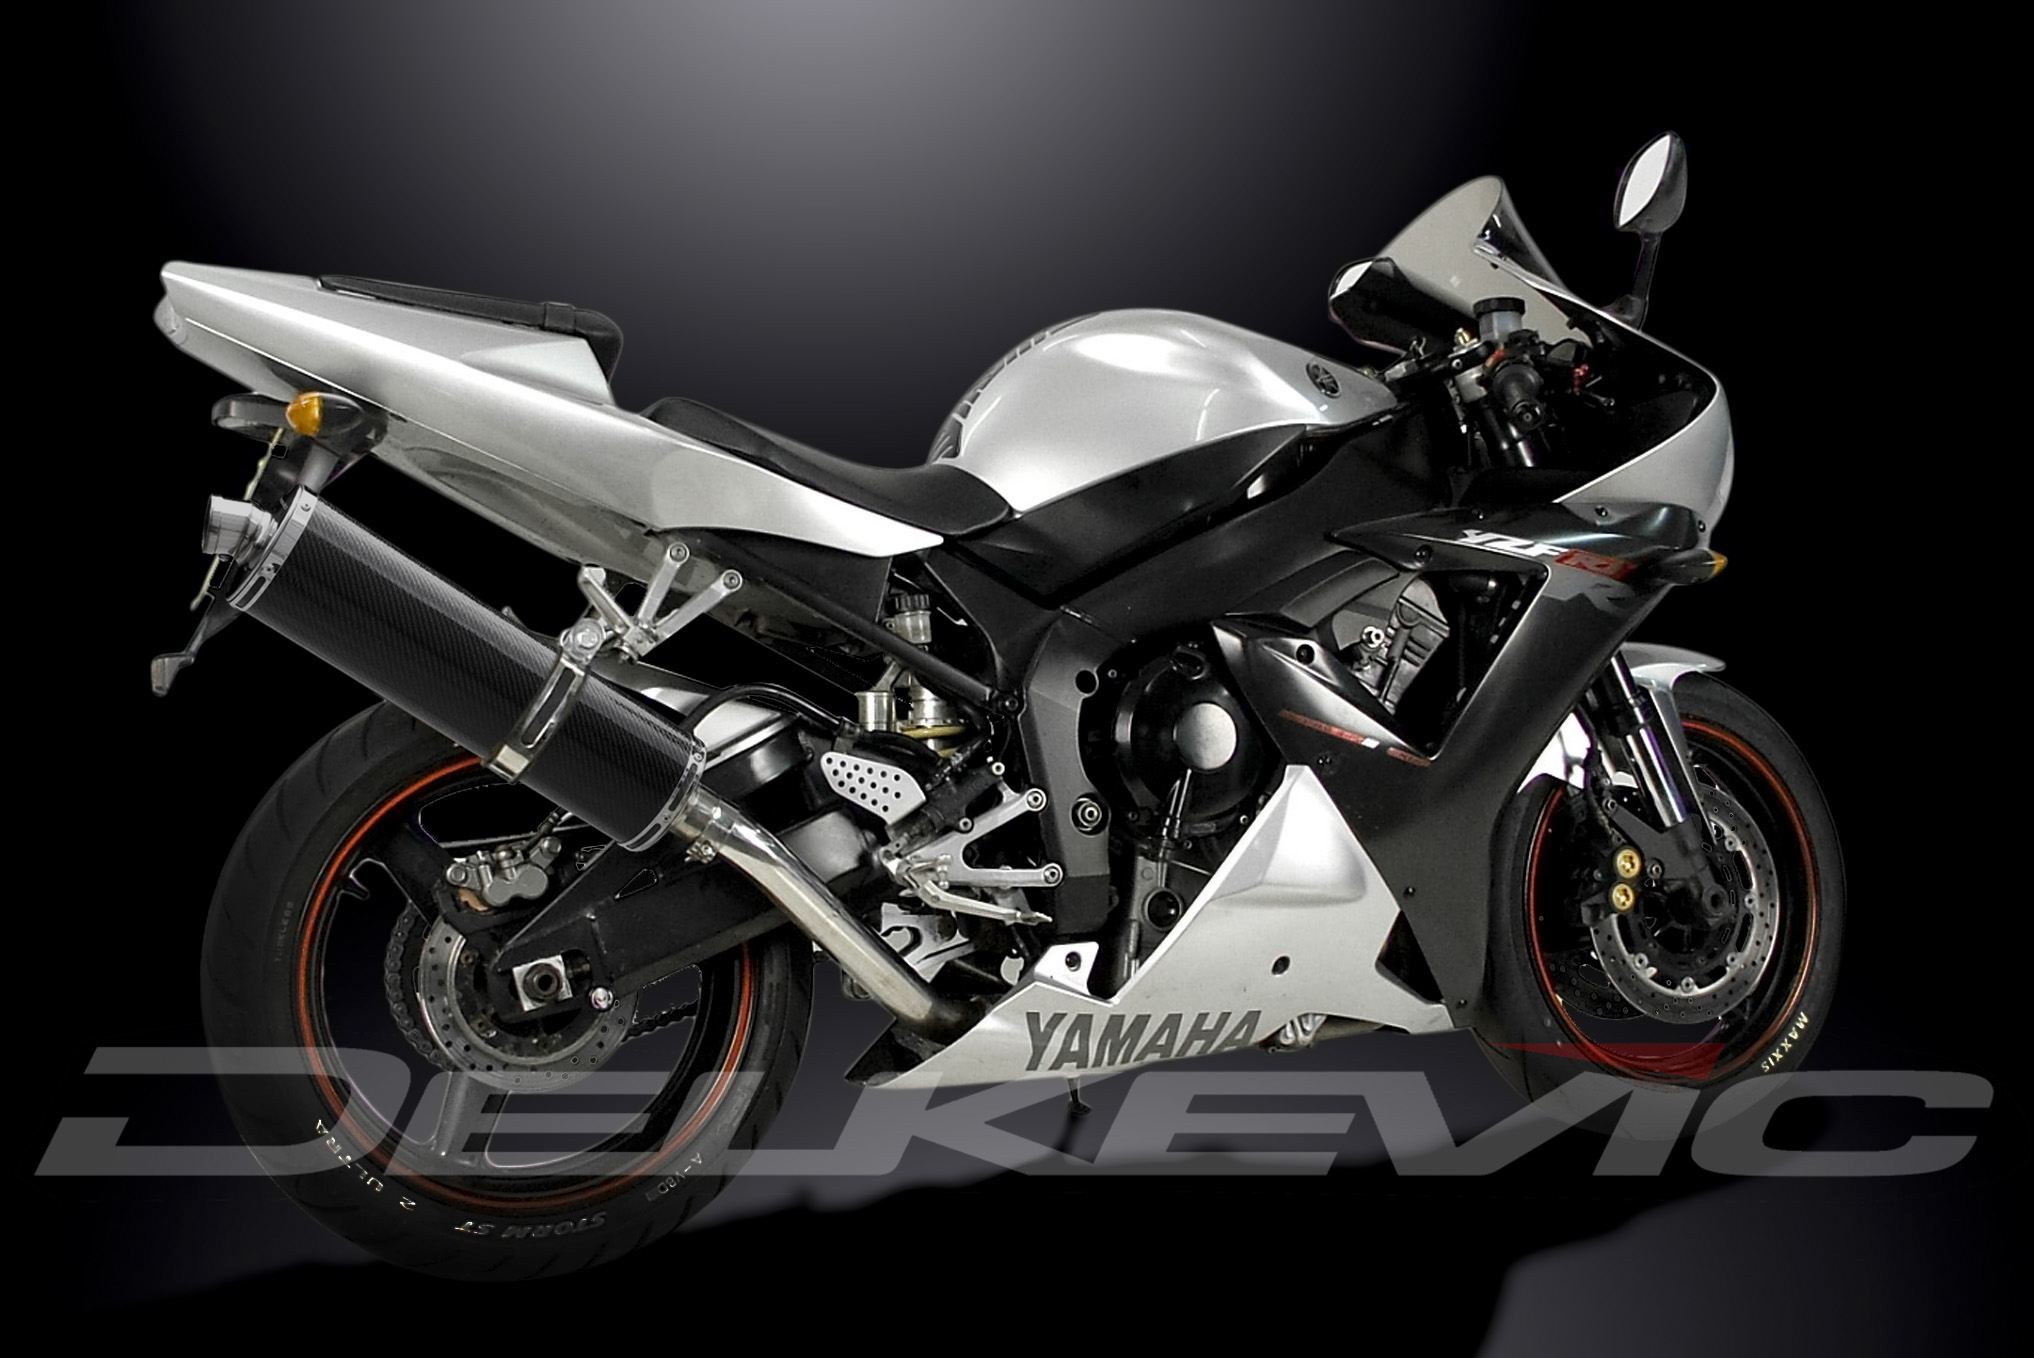 Глушитель DELKEVIC, Yamaha YZF-R1 02-03 oval carbon 450mm